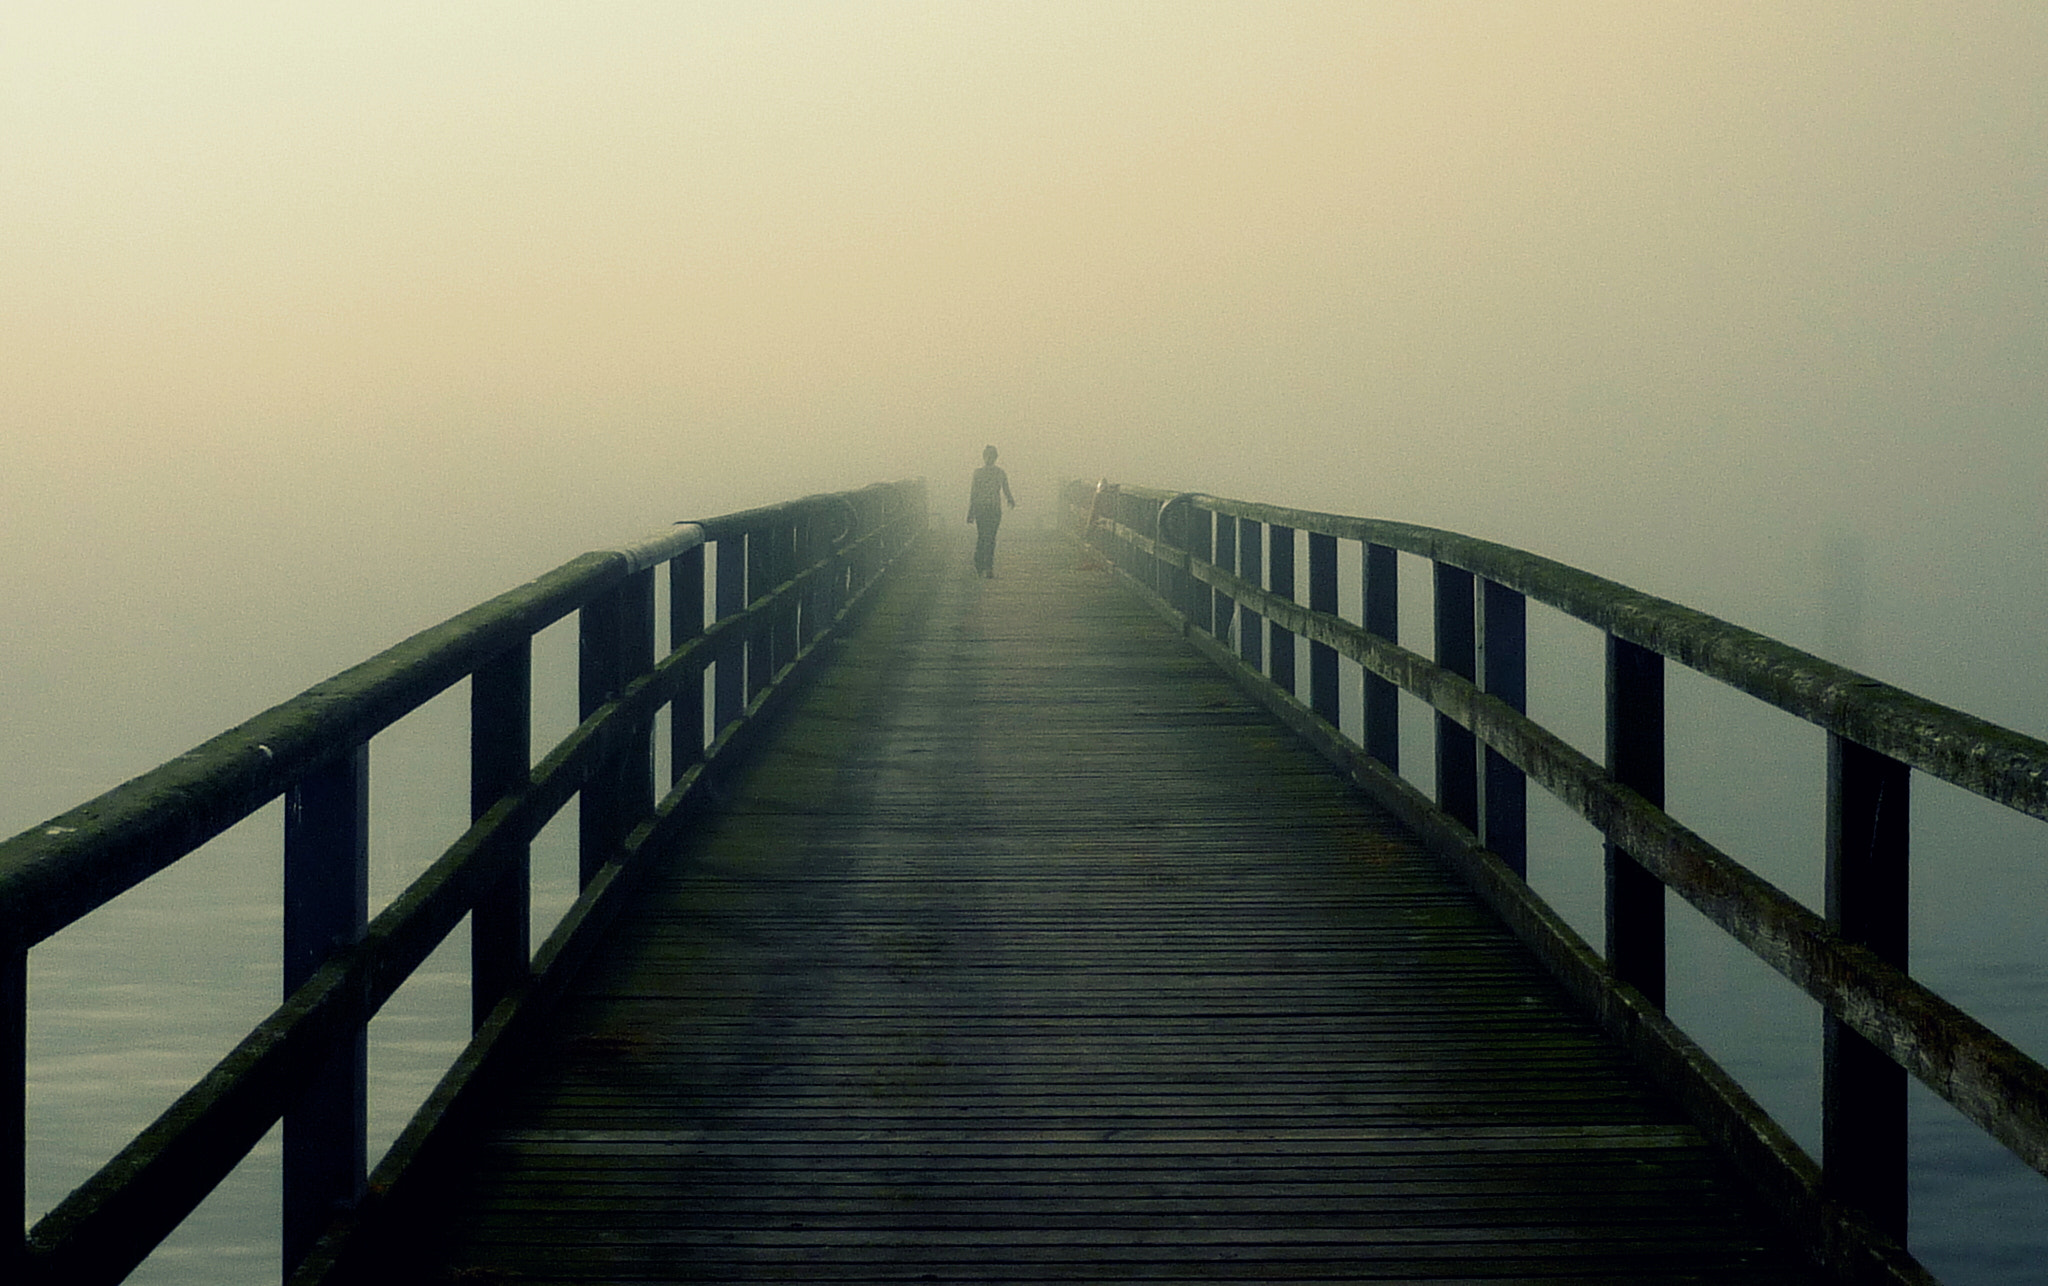 Photograph On the footbridge by Sophia Babel on 500px